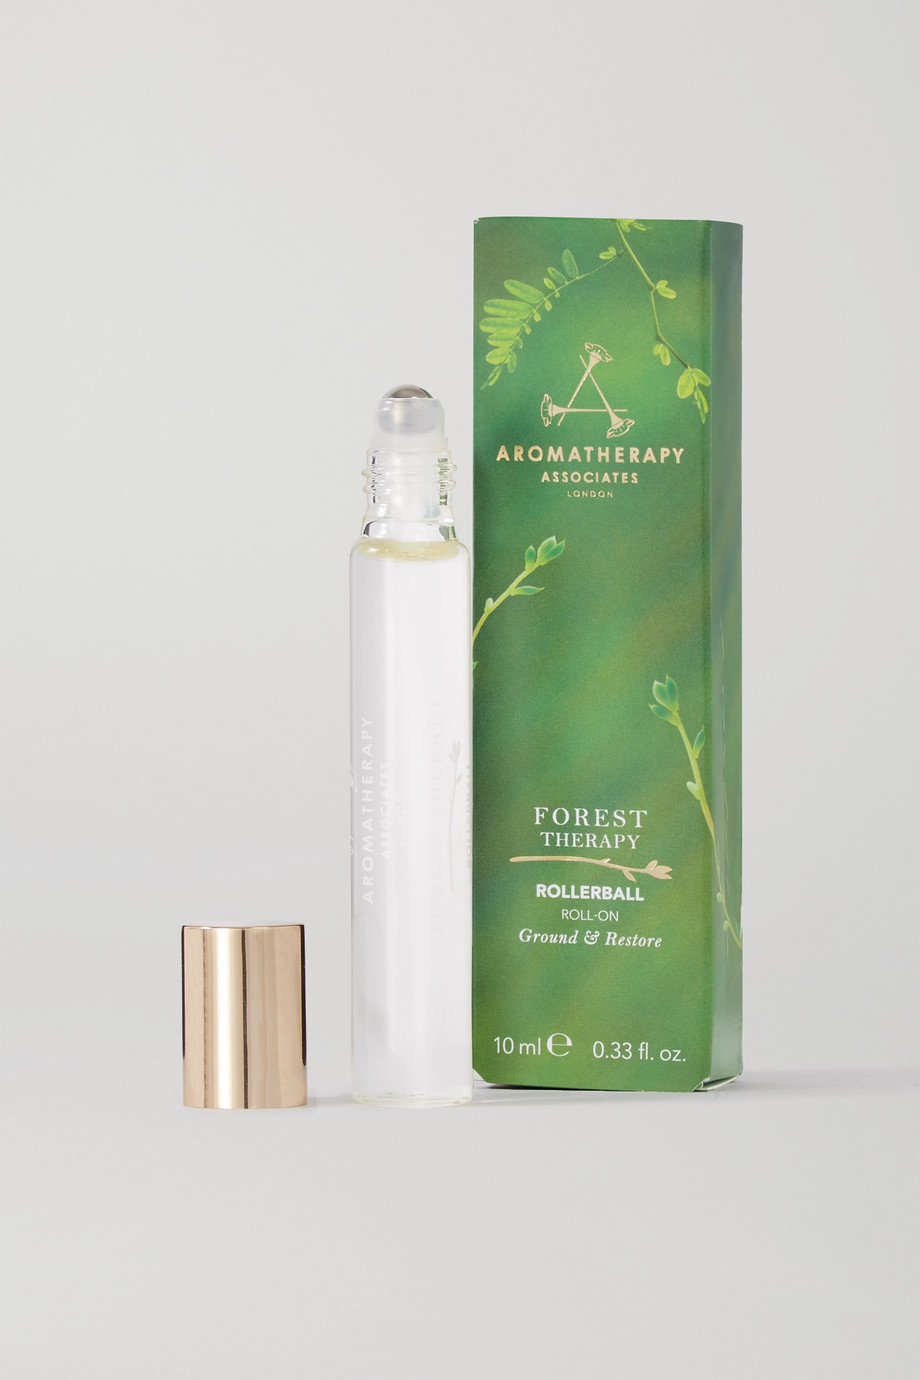 AROMATHERAPY ASSOCIATES Forest Therapy Roller Ball, 10ml